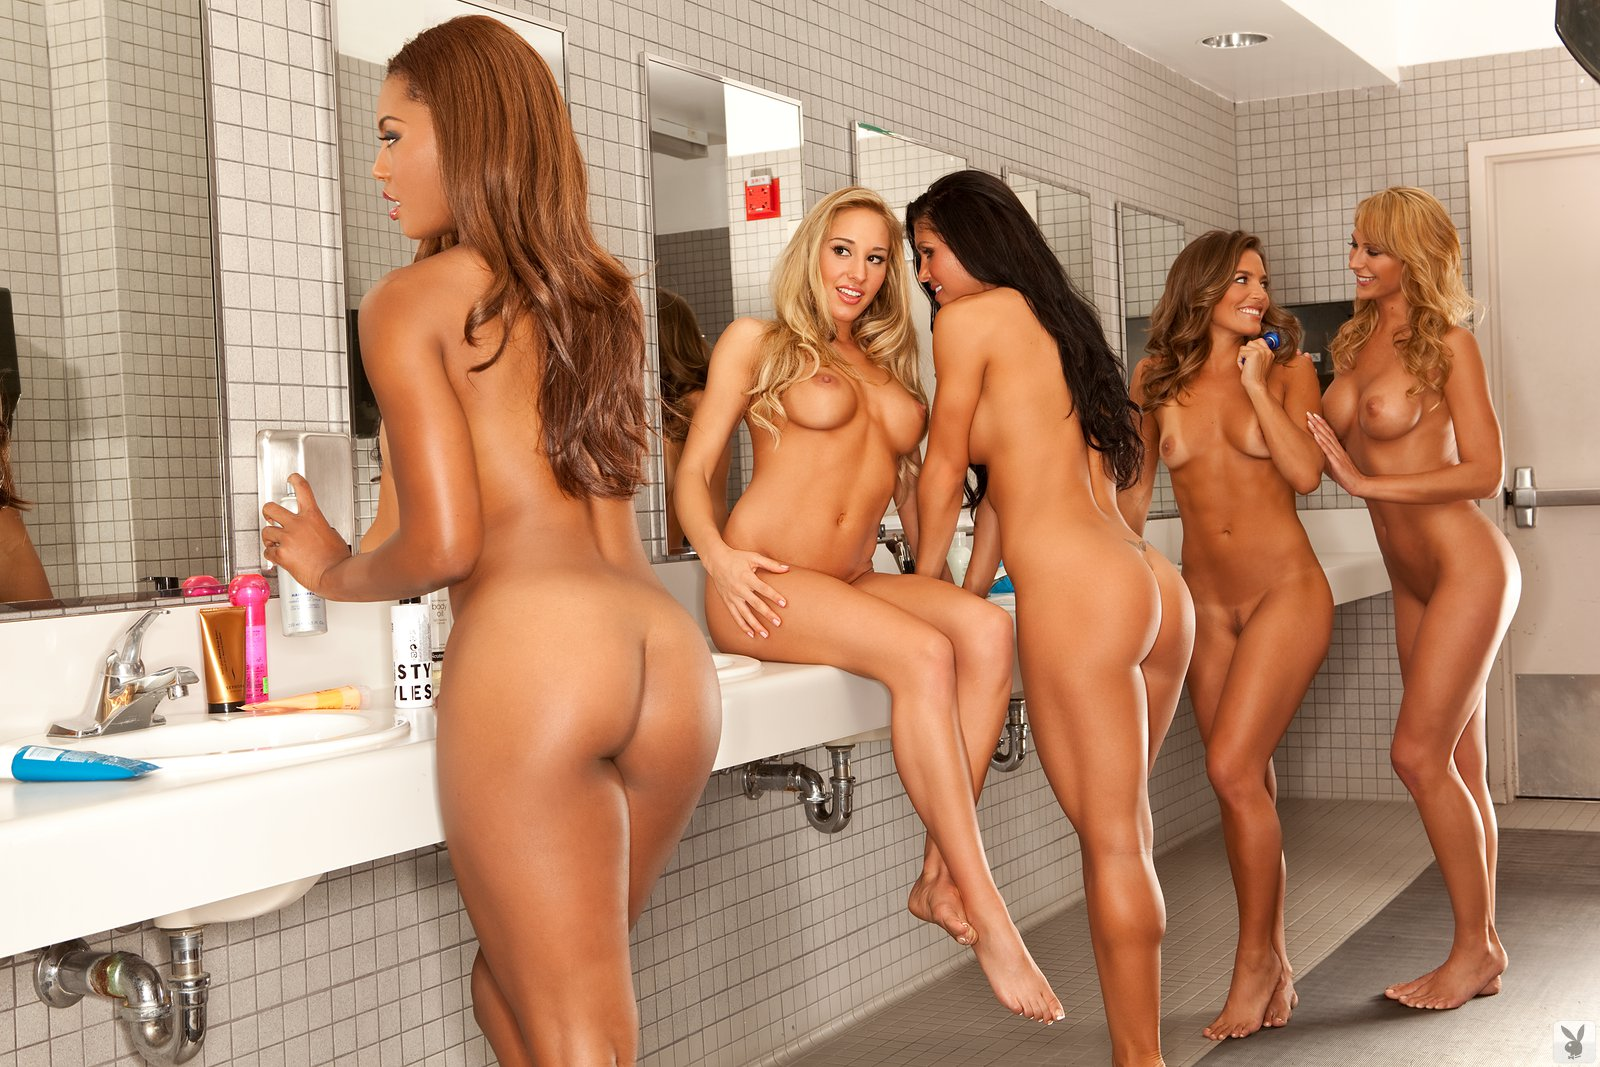 playboy bunnies today nude